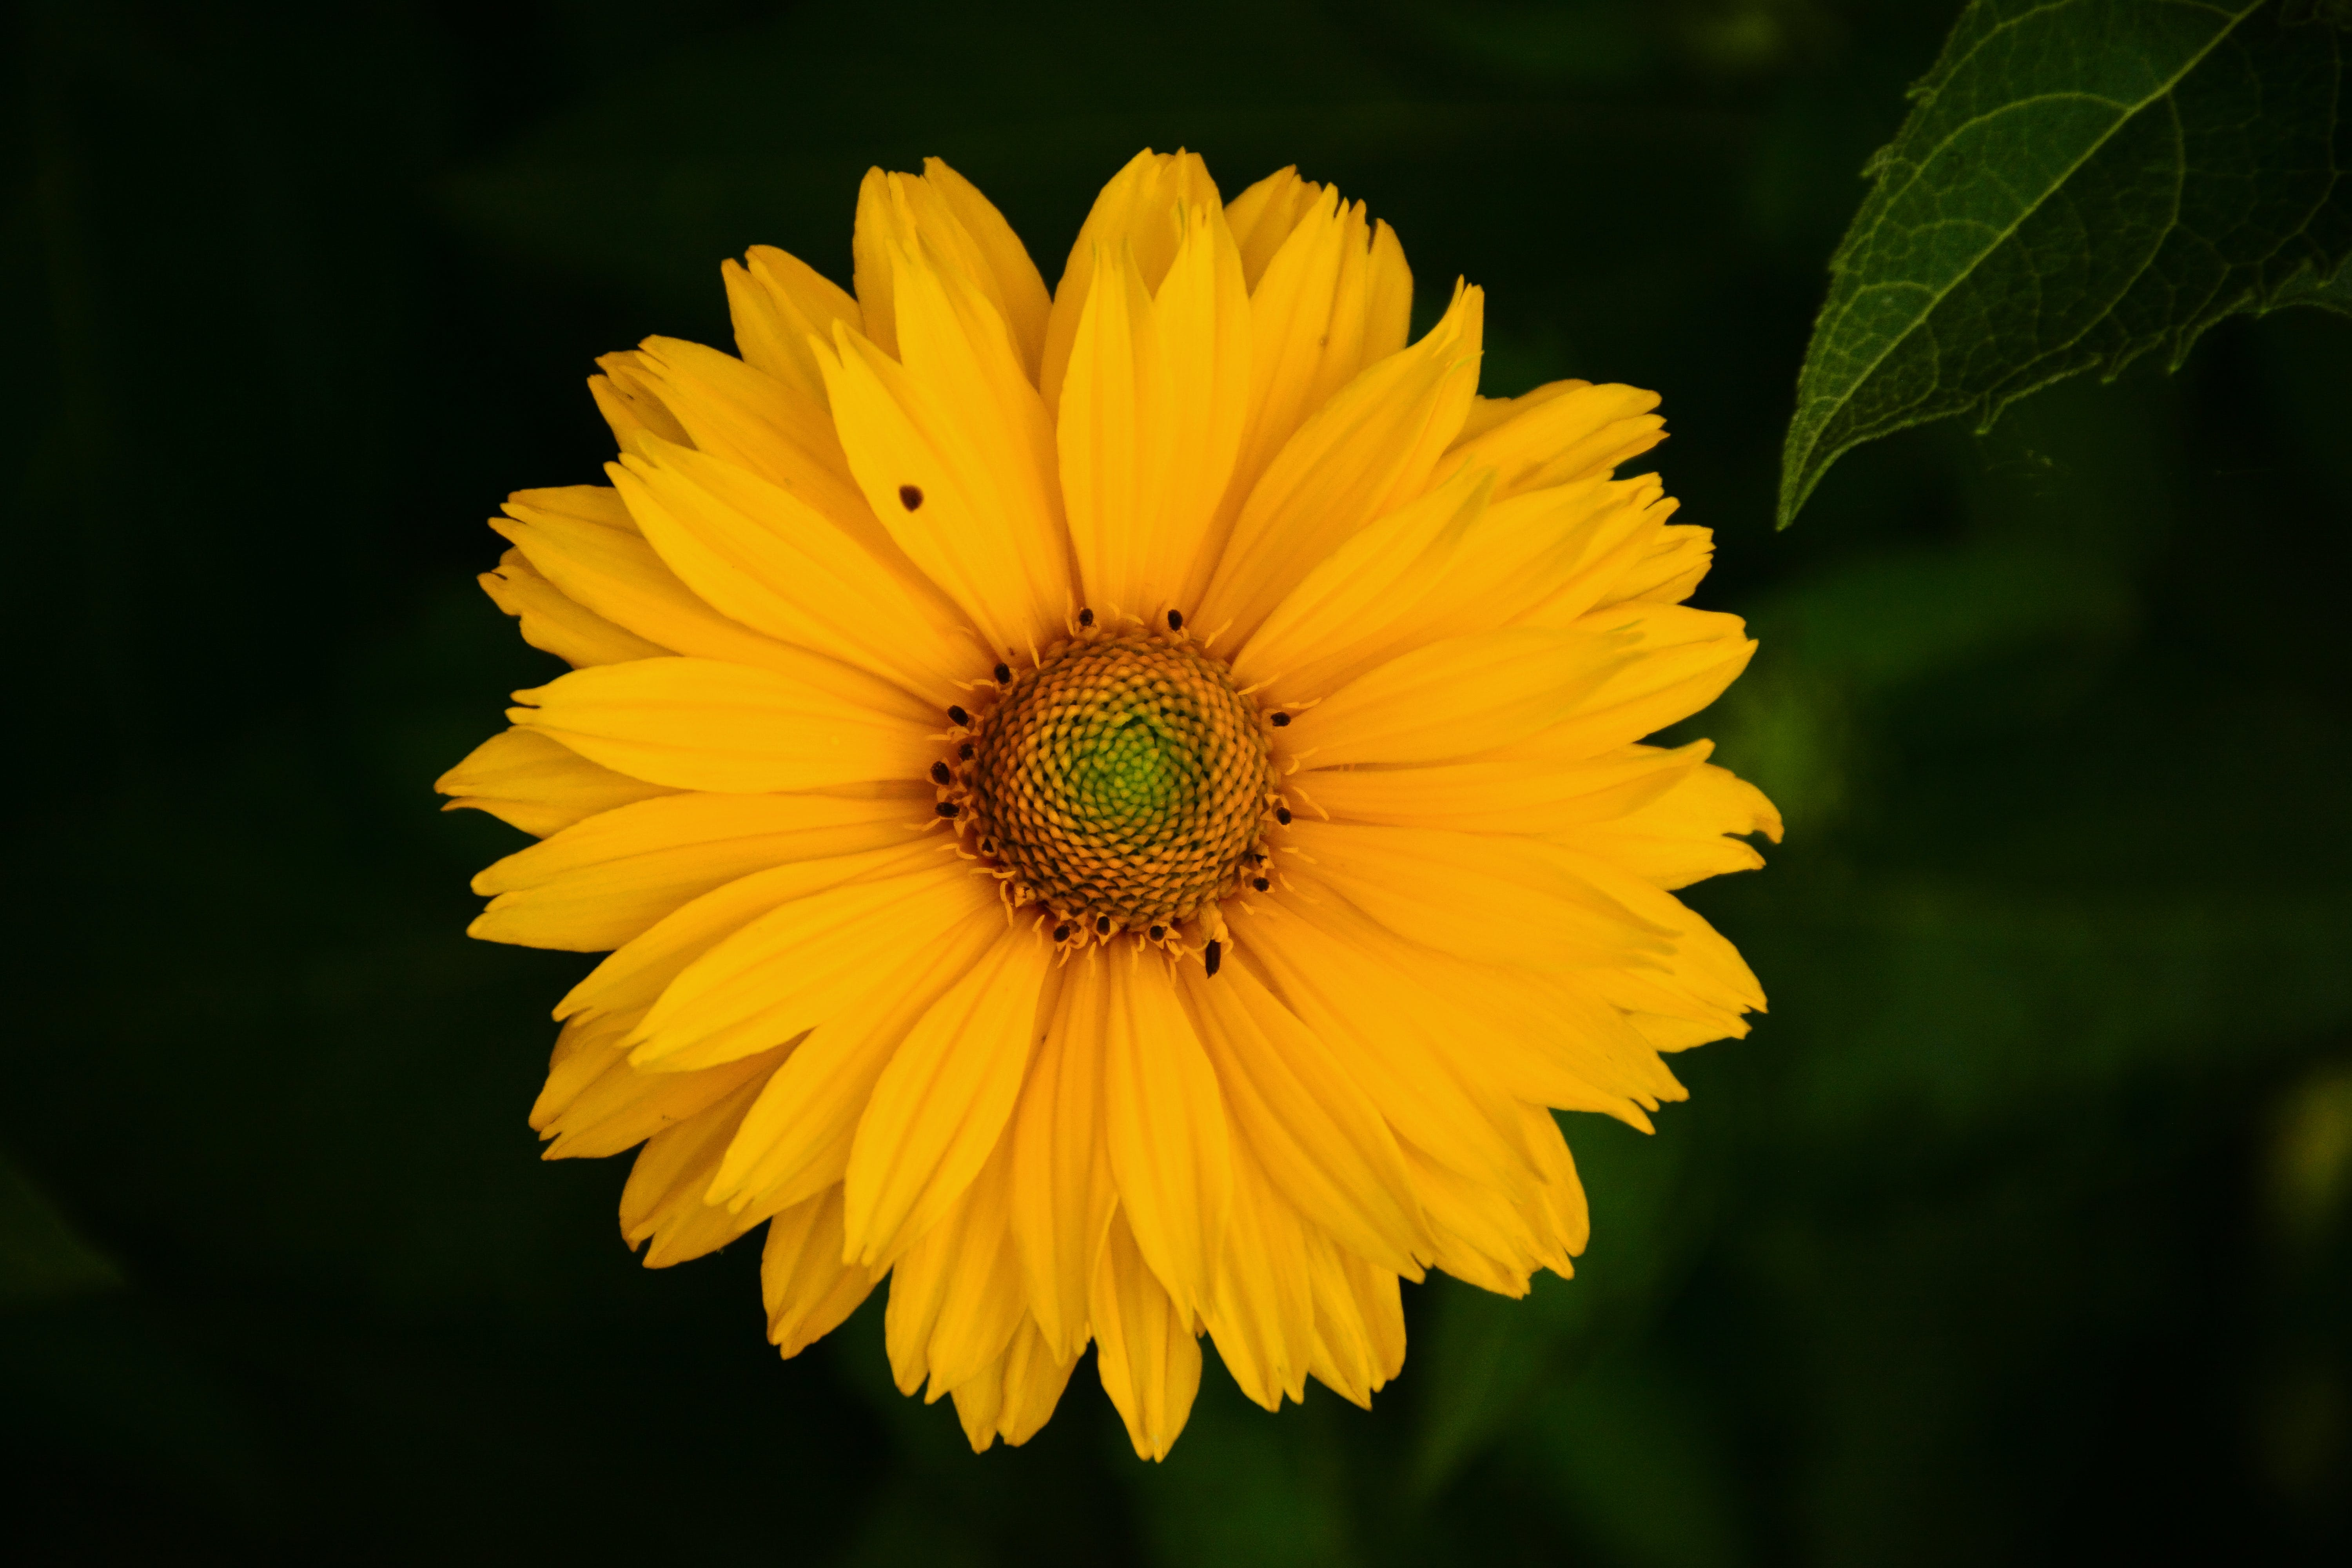 Blooming Sunflower Near Green Leaf Plant at Daytime